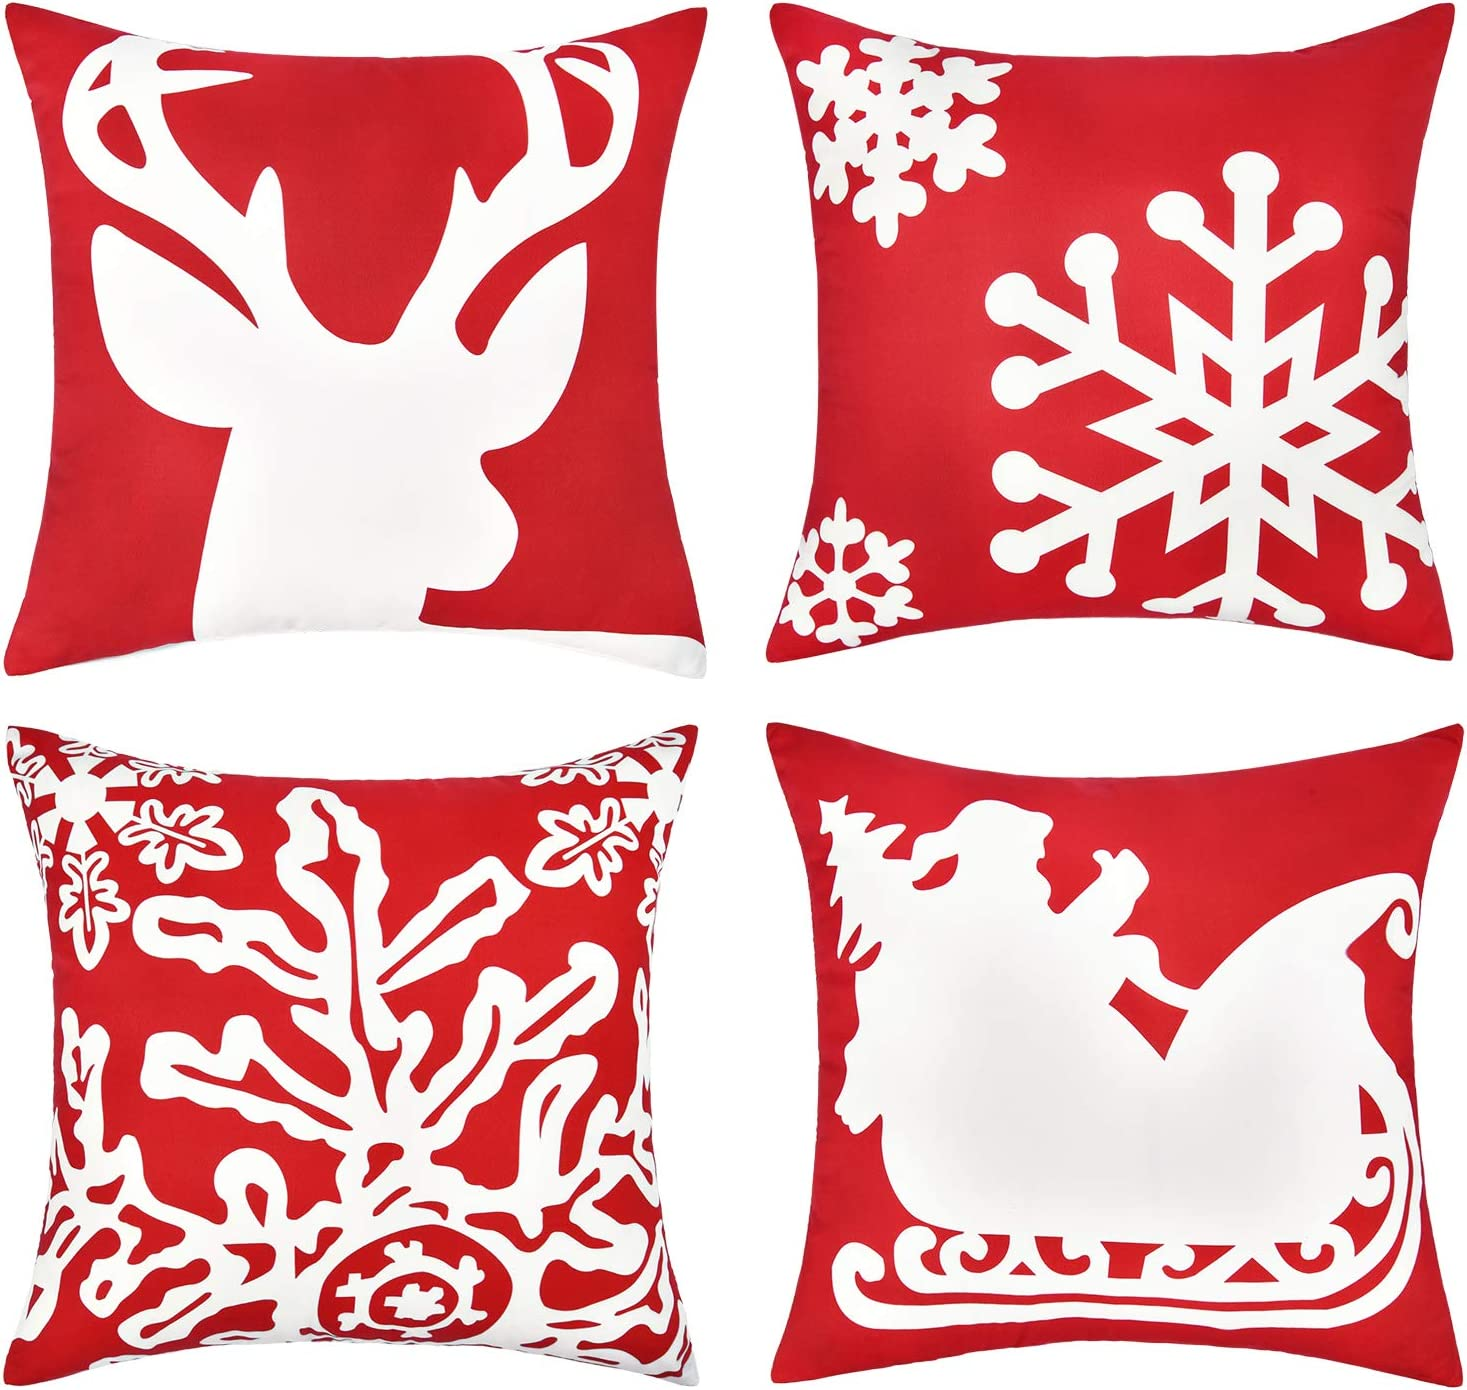 Christmas Pillow Covers with Embroidery